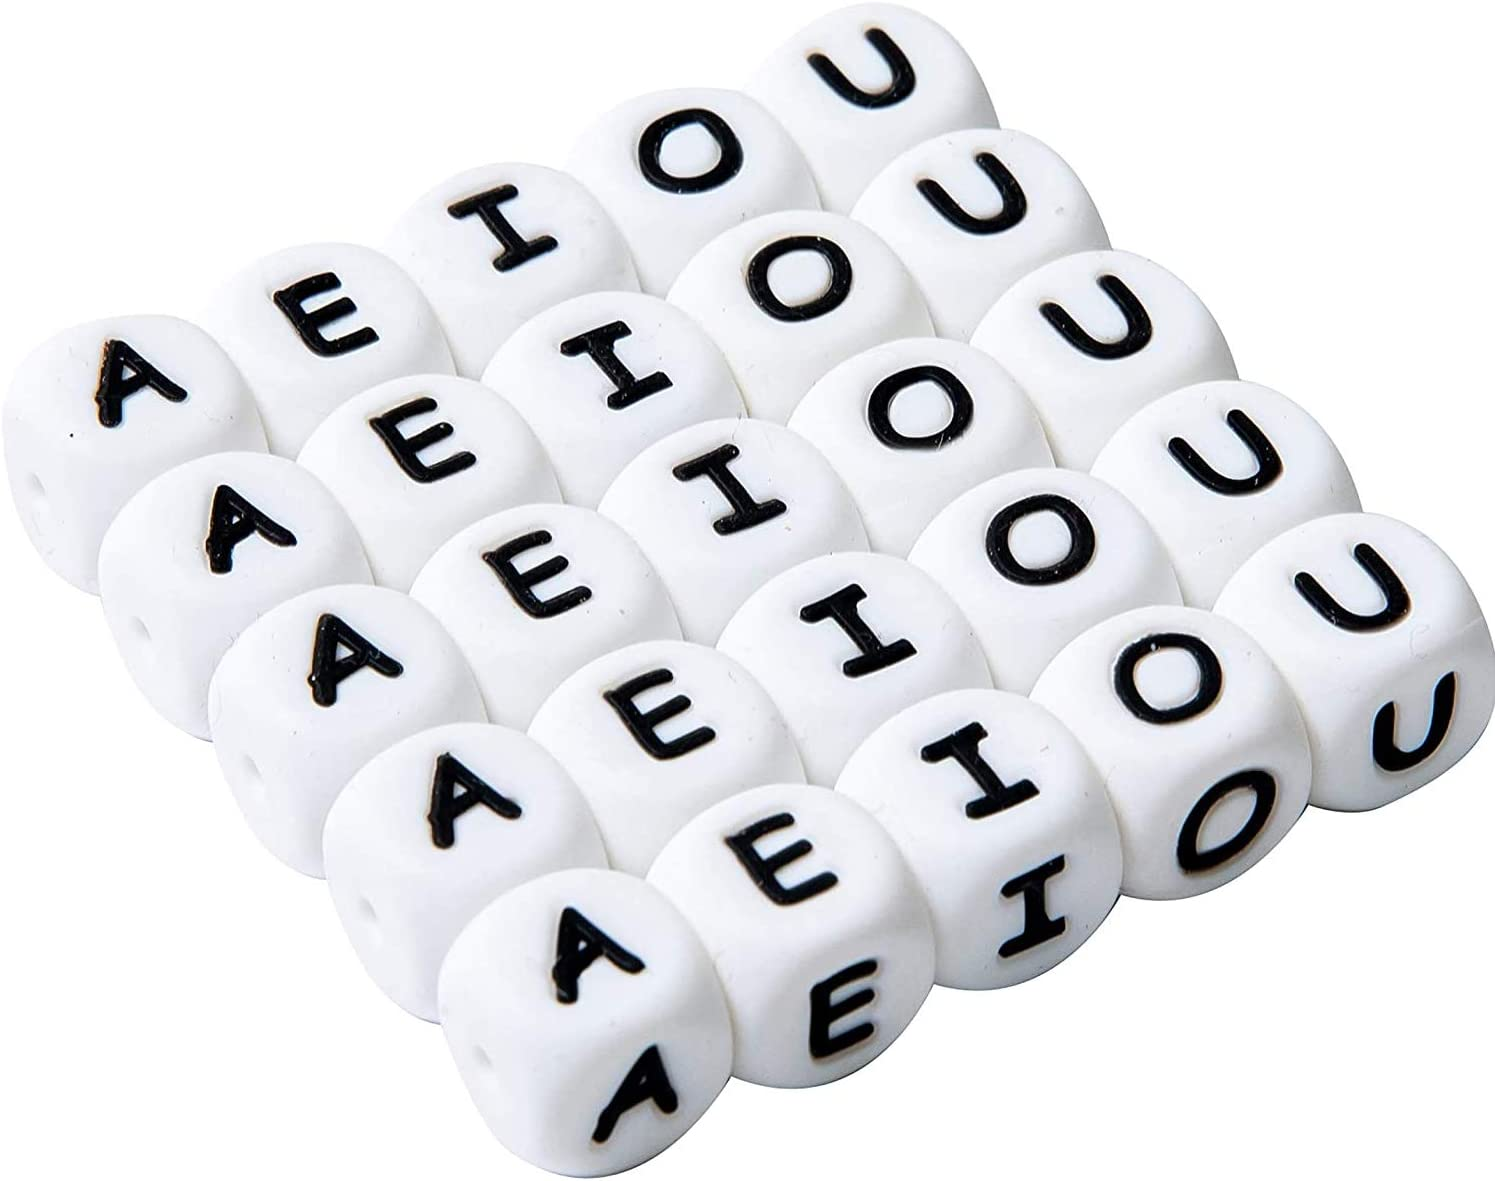 Promise Babe 12mm Square Silicone Alphabet Beads 40pc Vowel AEIOU Letters for DIY Nursing Necklace Baby Teething Beads